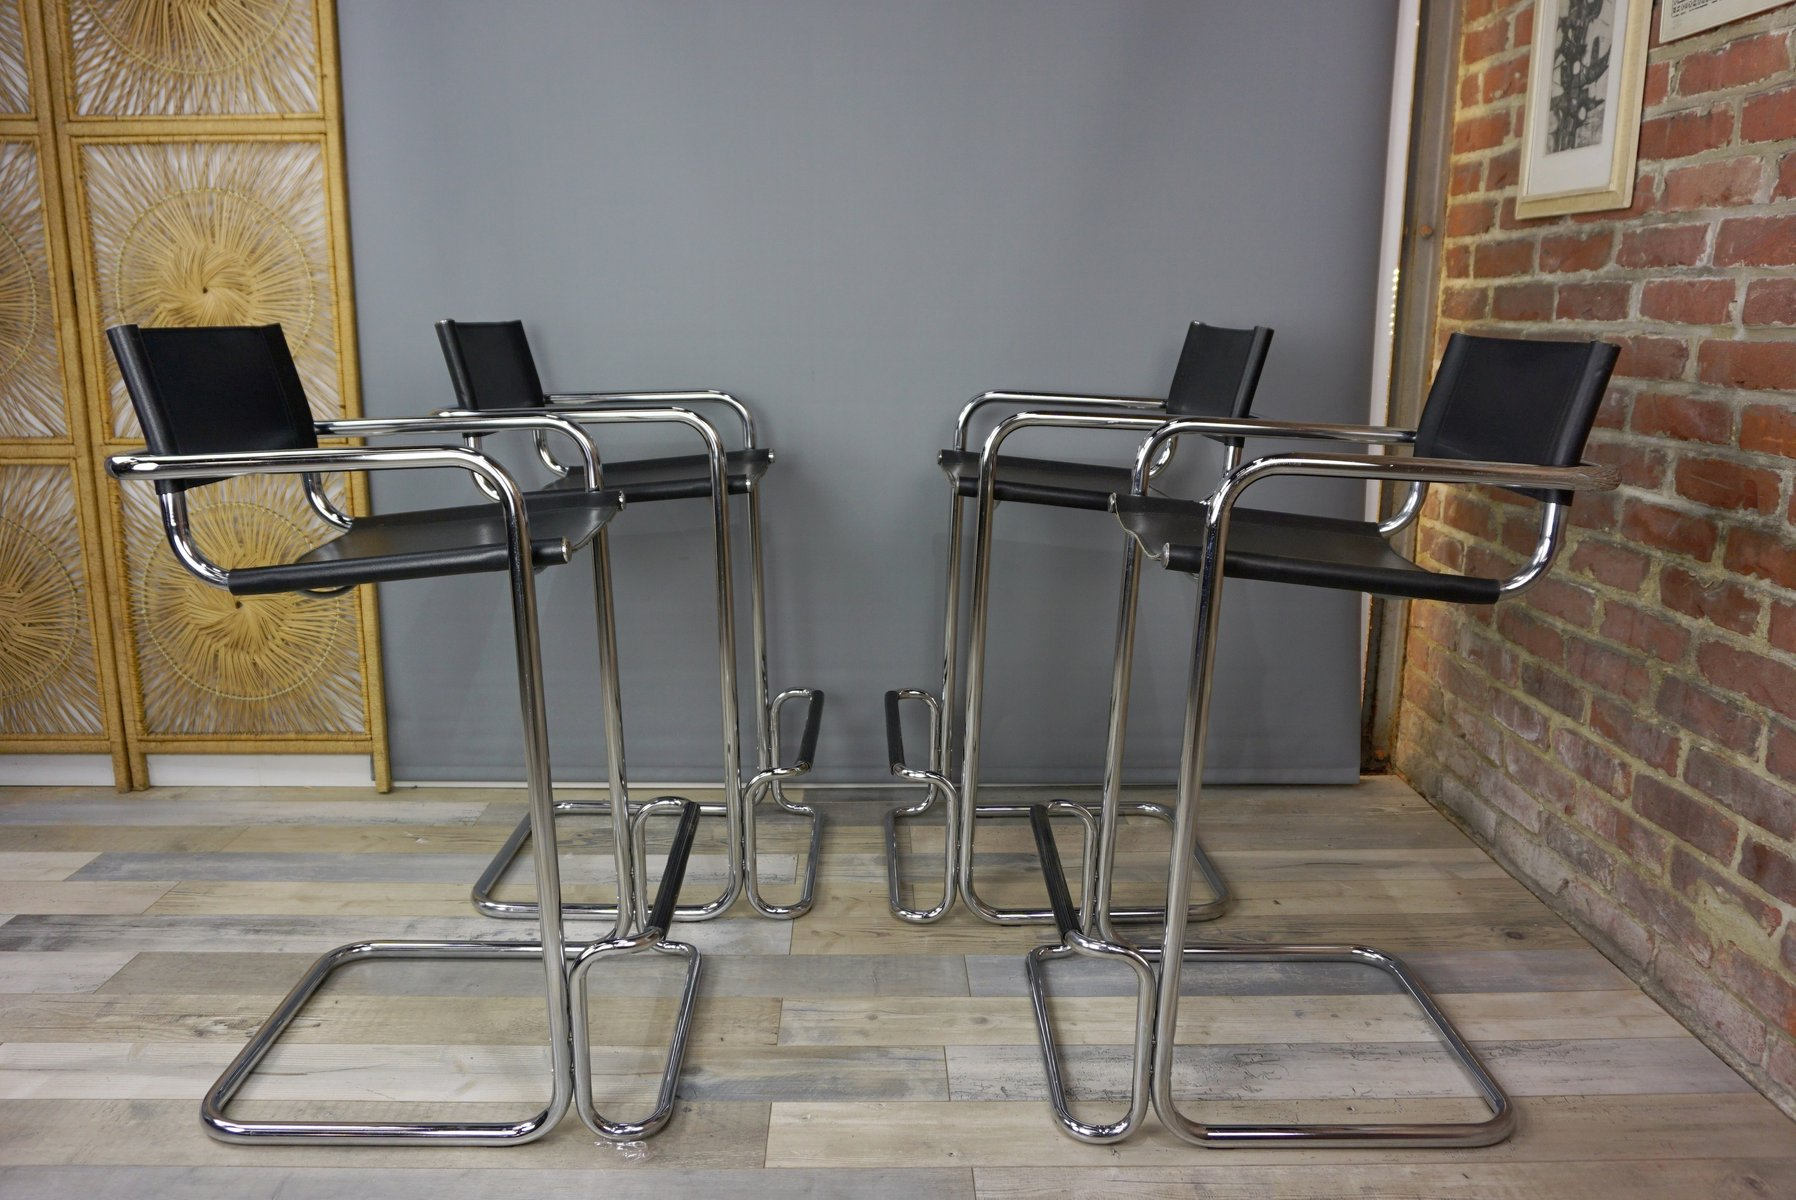 Stools By Mart Stam 1970s Set Of 4 For Sale At Pamono